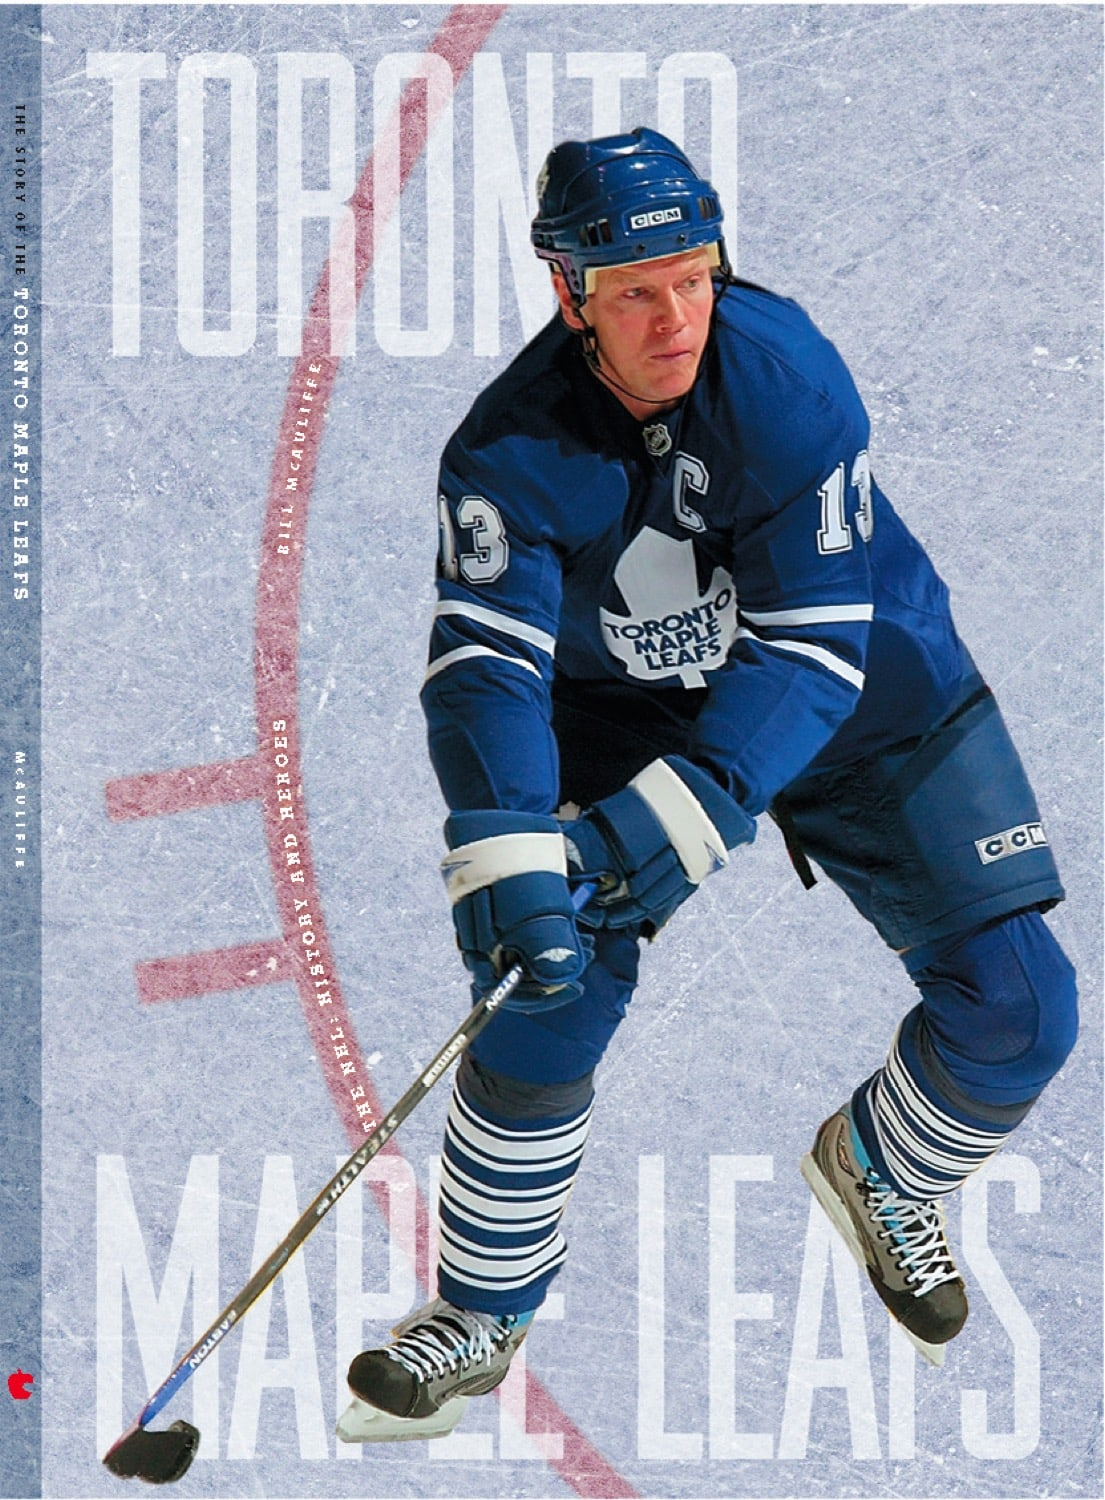 The NHL: History and Heroes: The Story of the Toronto Maple Leafs